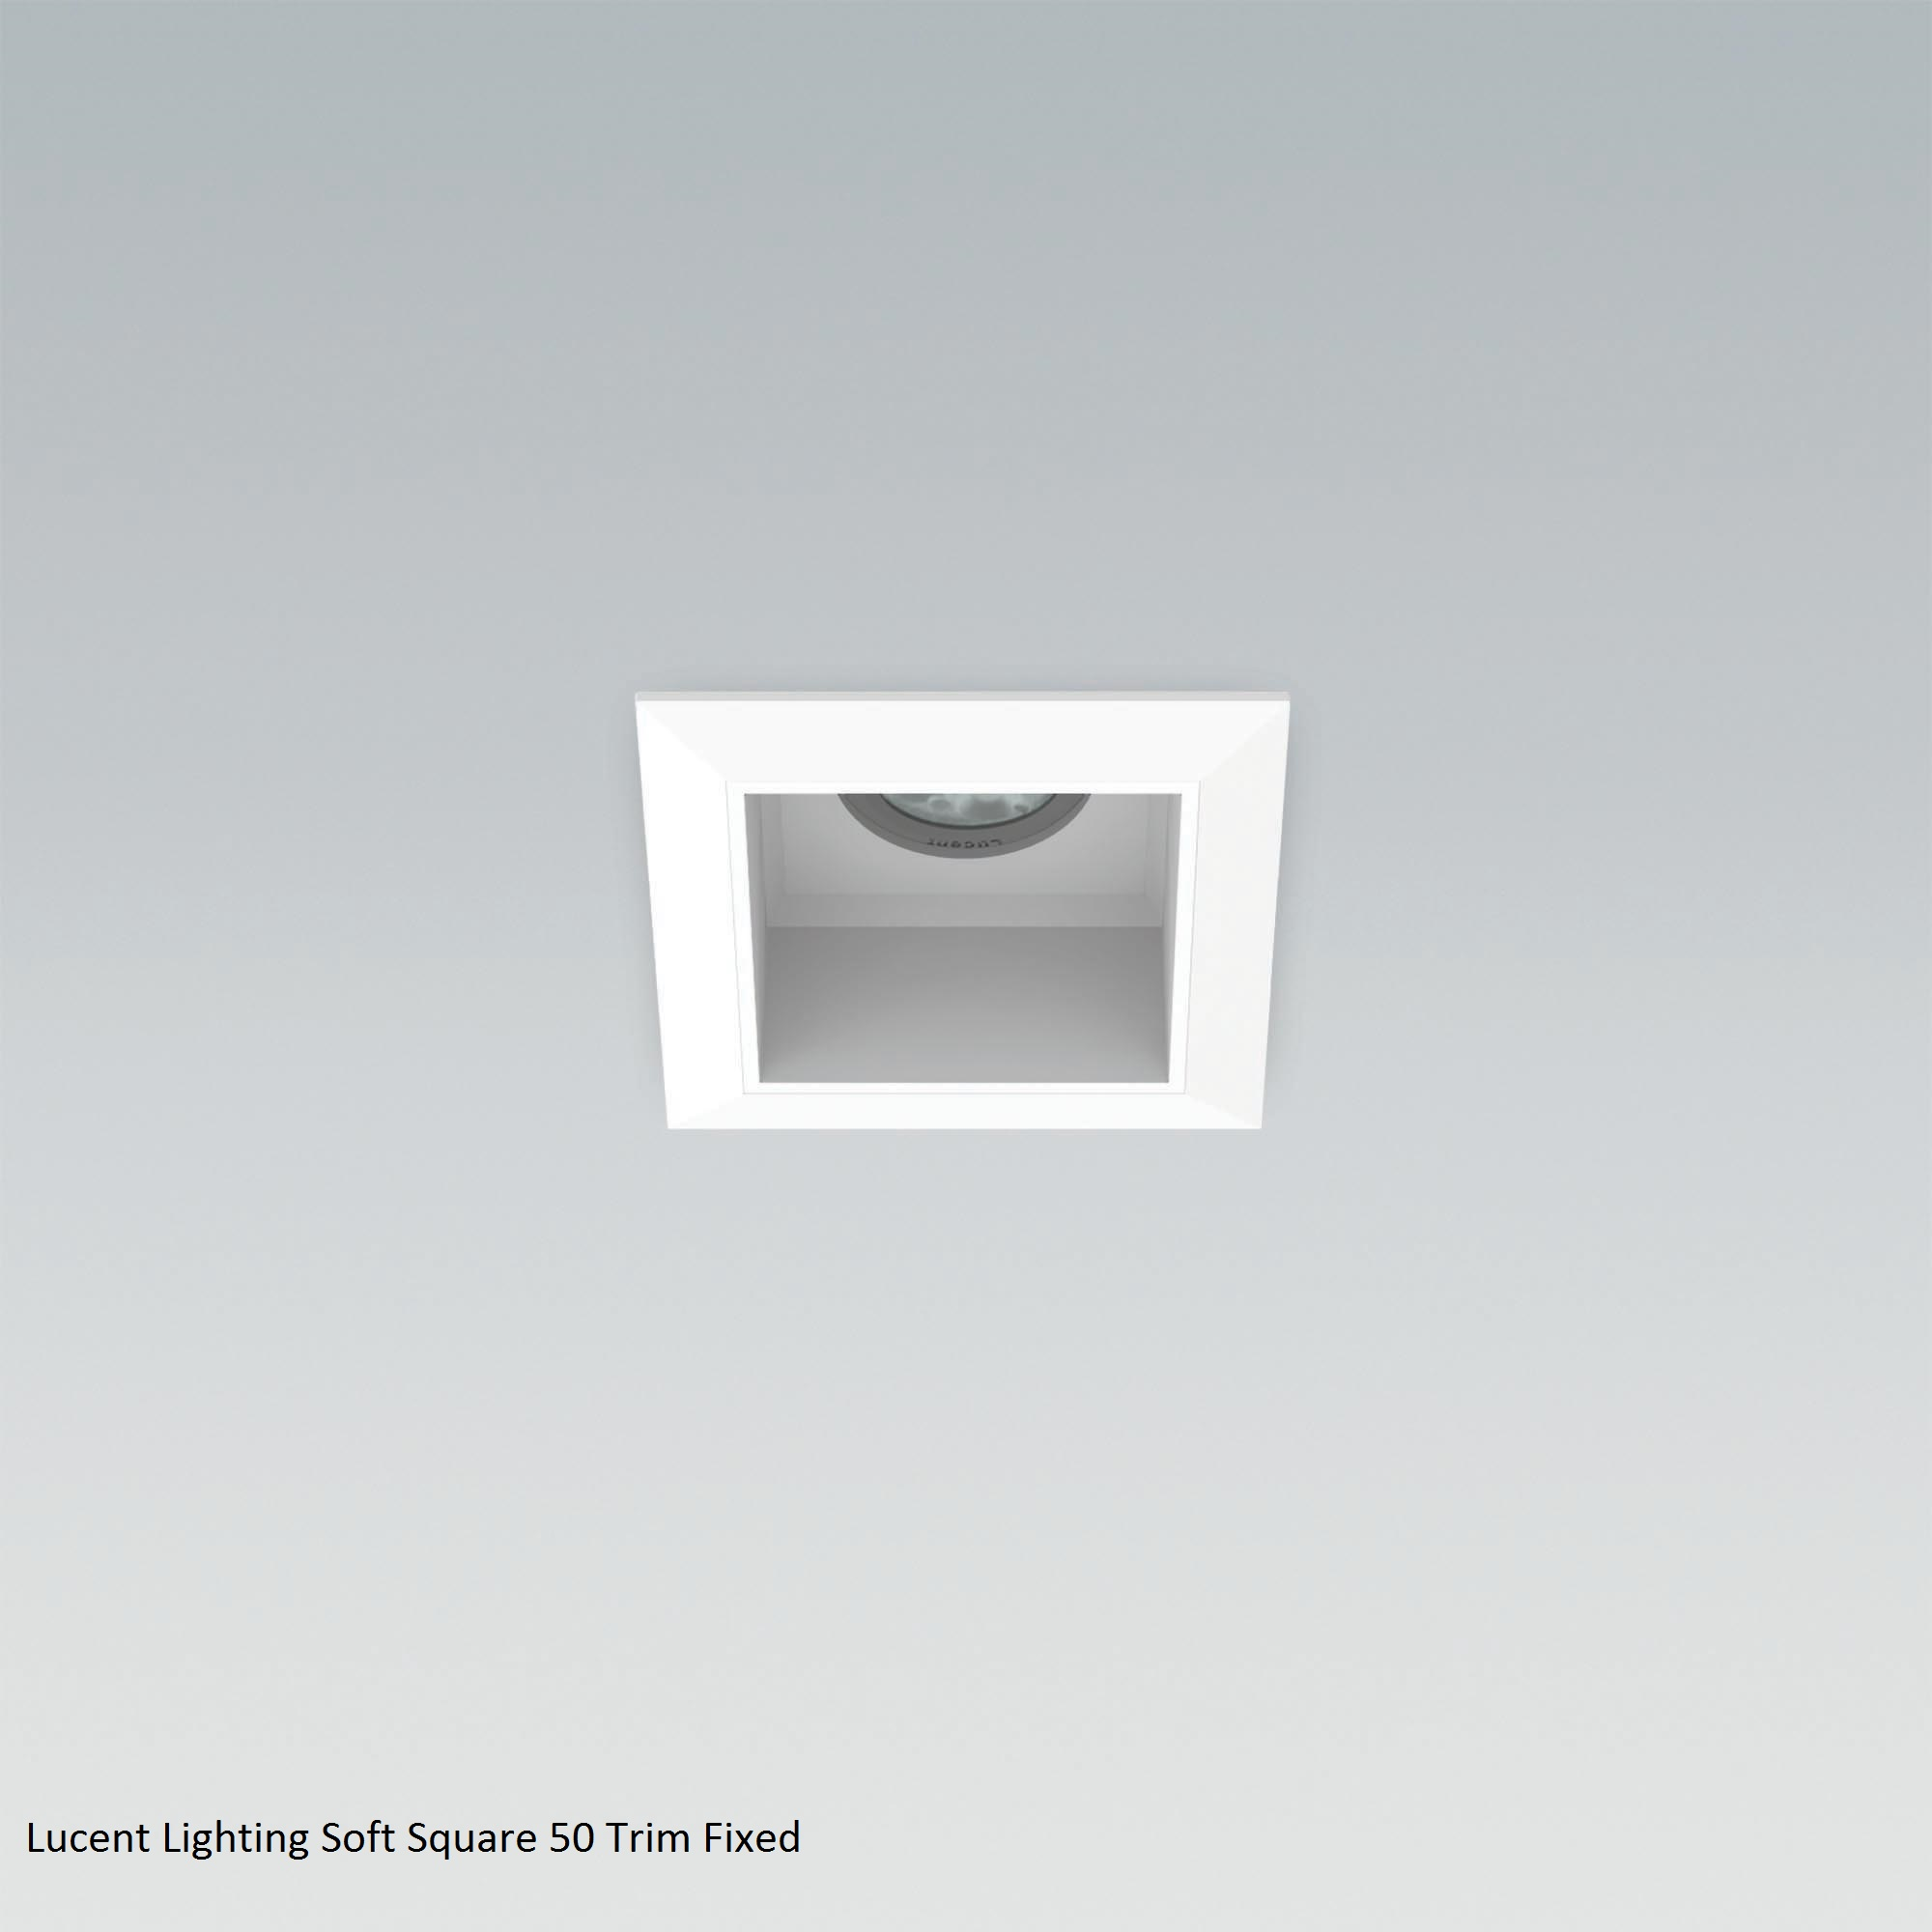 lucent-lighting-soft-square-50-trim-fixed